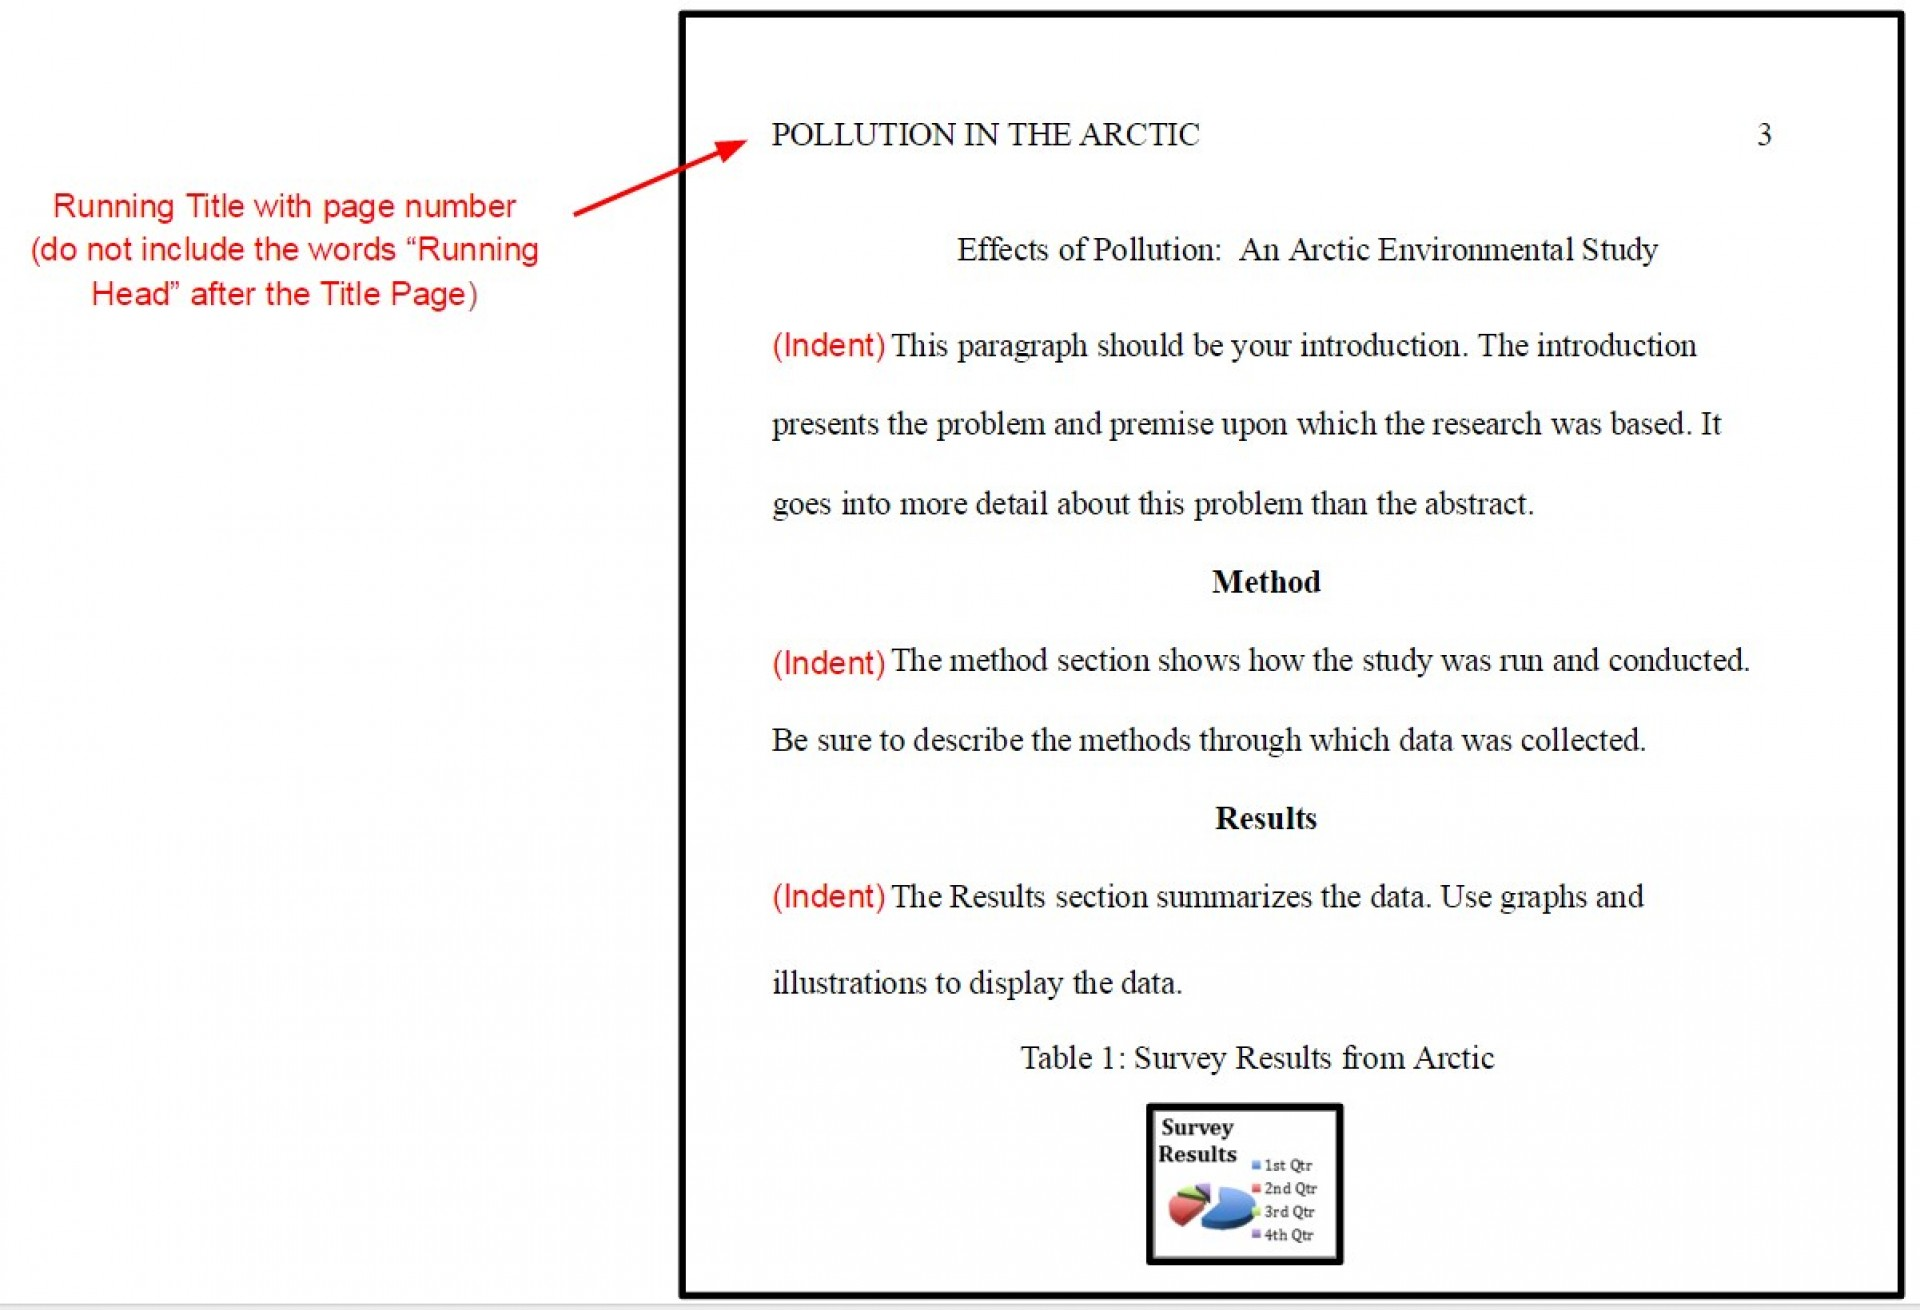 007 Example Of Research Paper In Apa Style Stirring Writing Using Format 6th Edition 1920